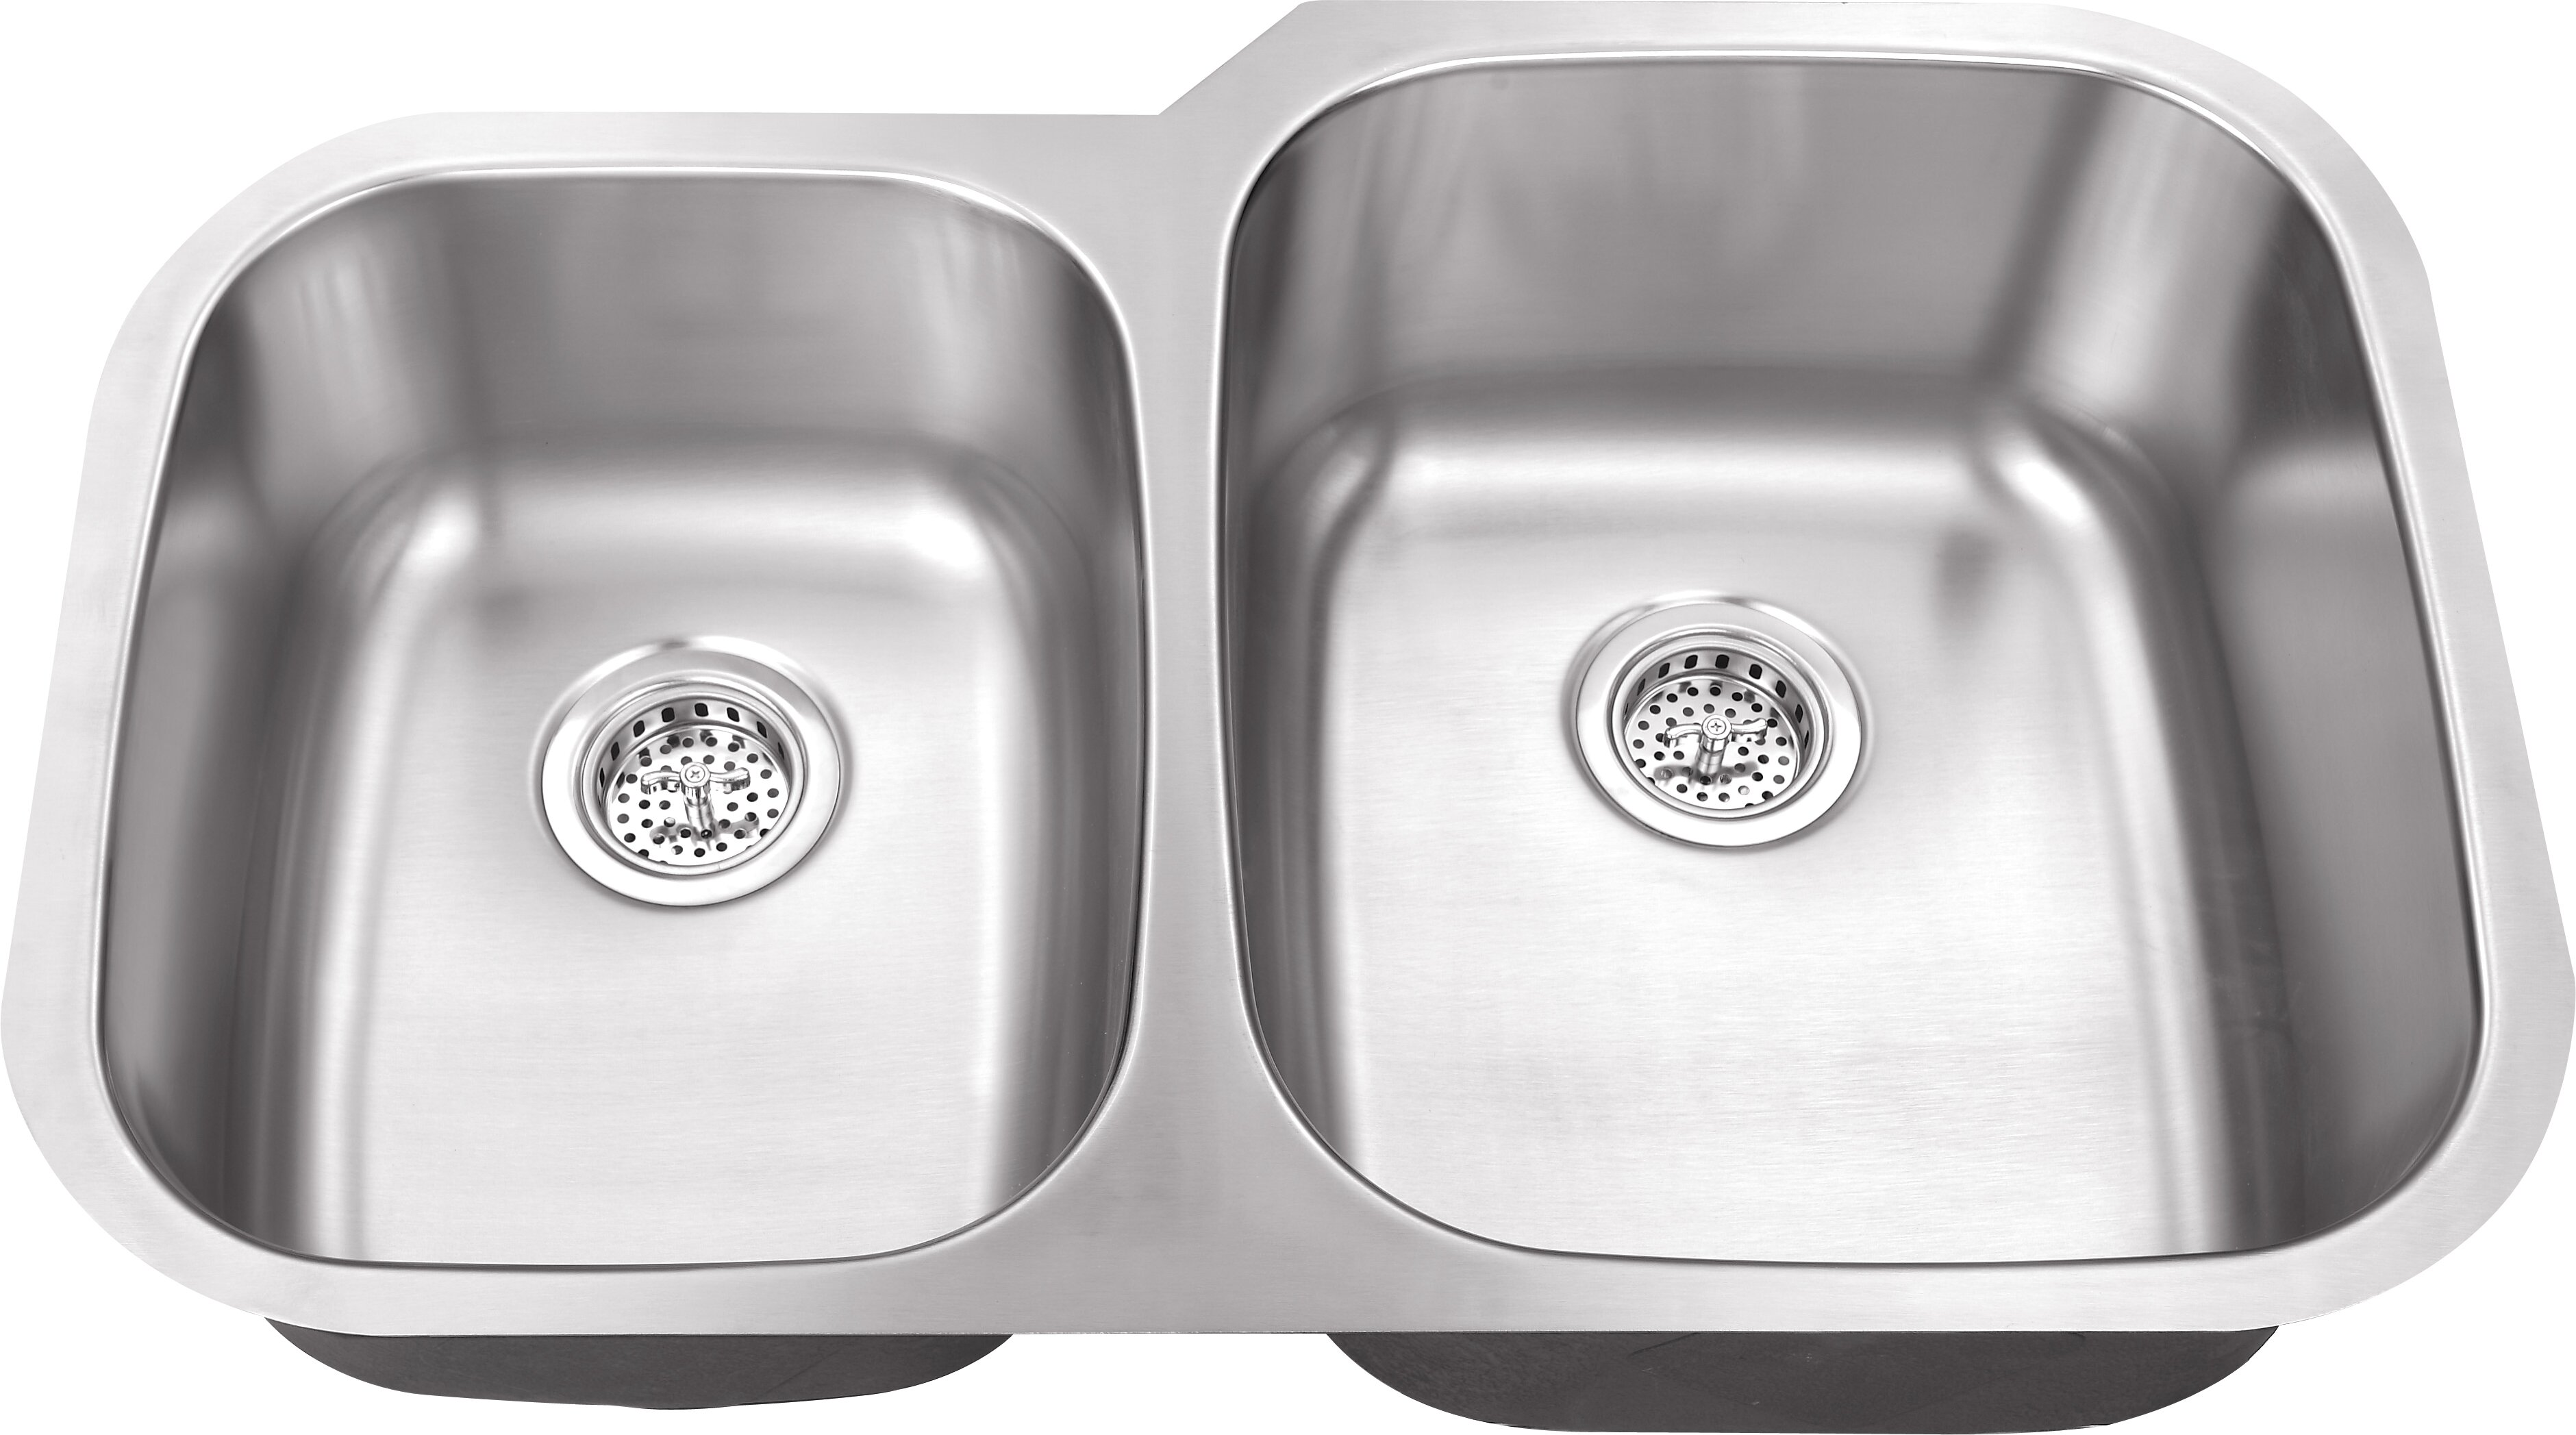 Kitchen Sinks Stainless Steel | Kitchen Sinks Stainless Steel | Quality Stainless Steel Kitchen Sinks